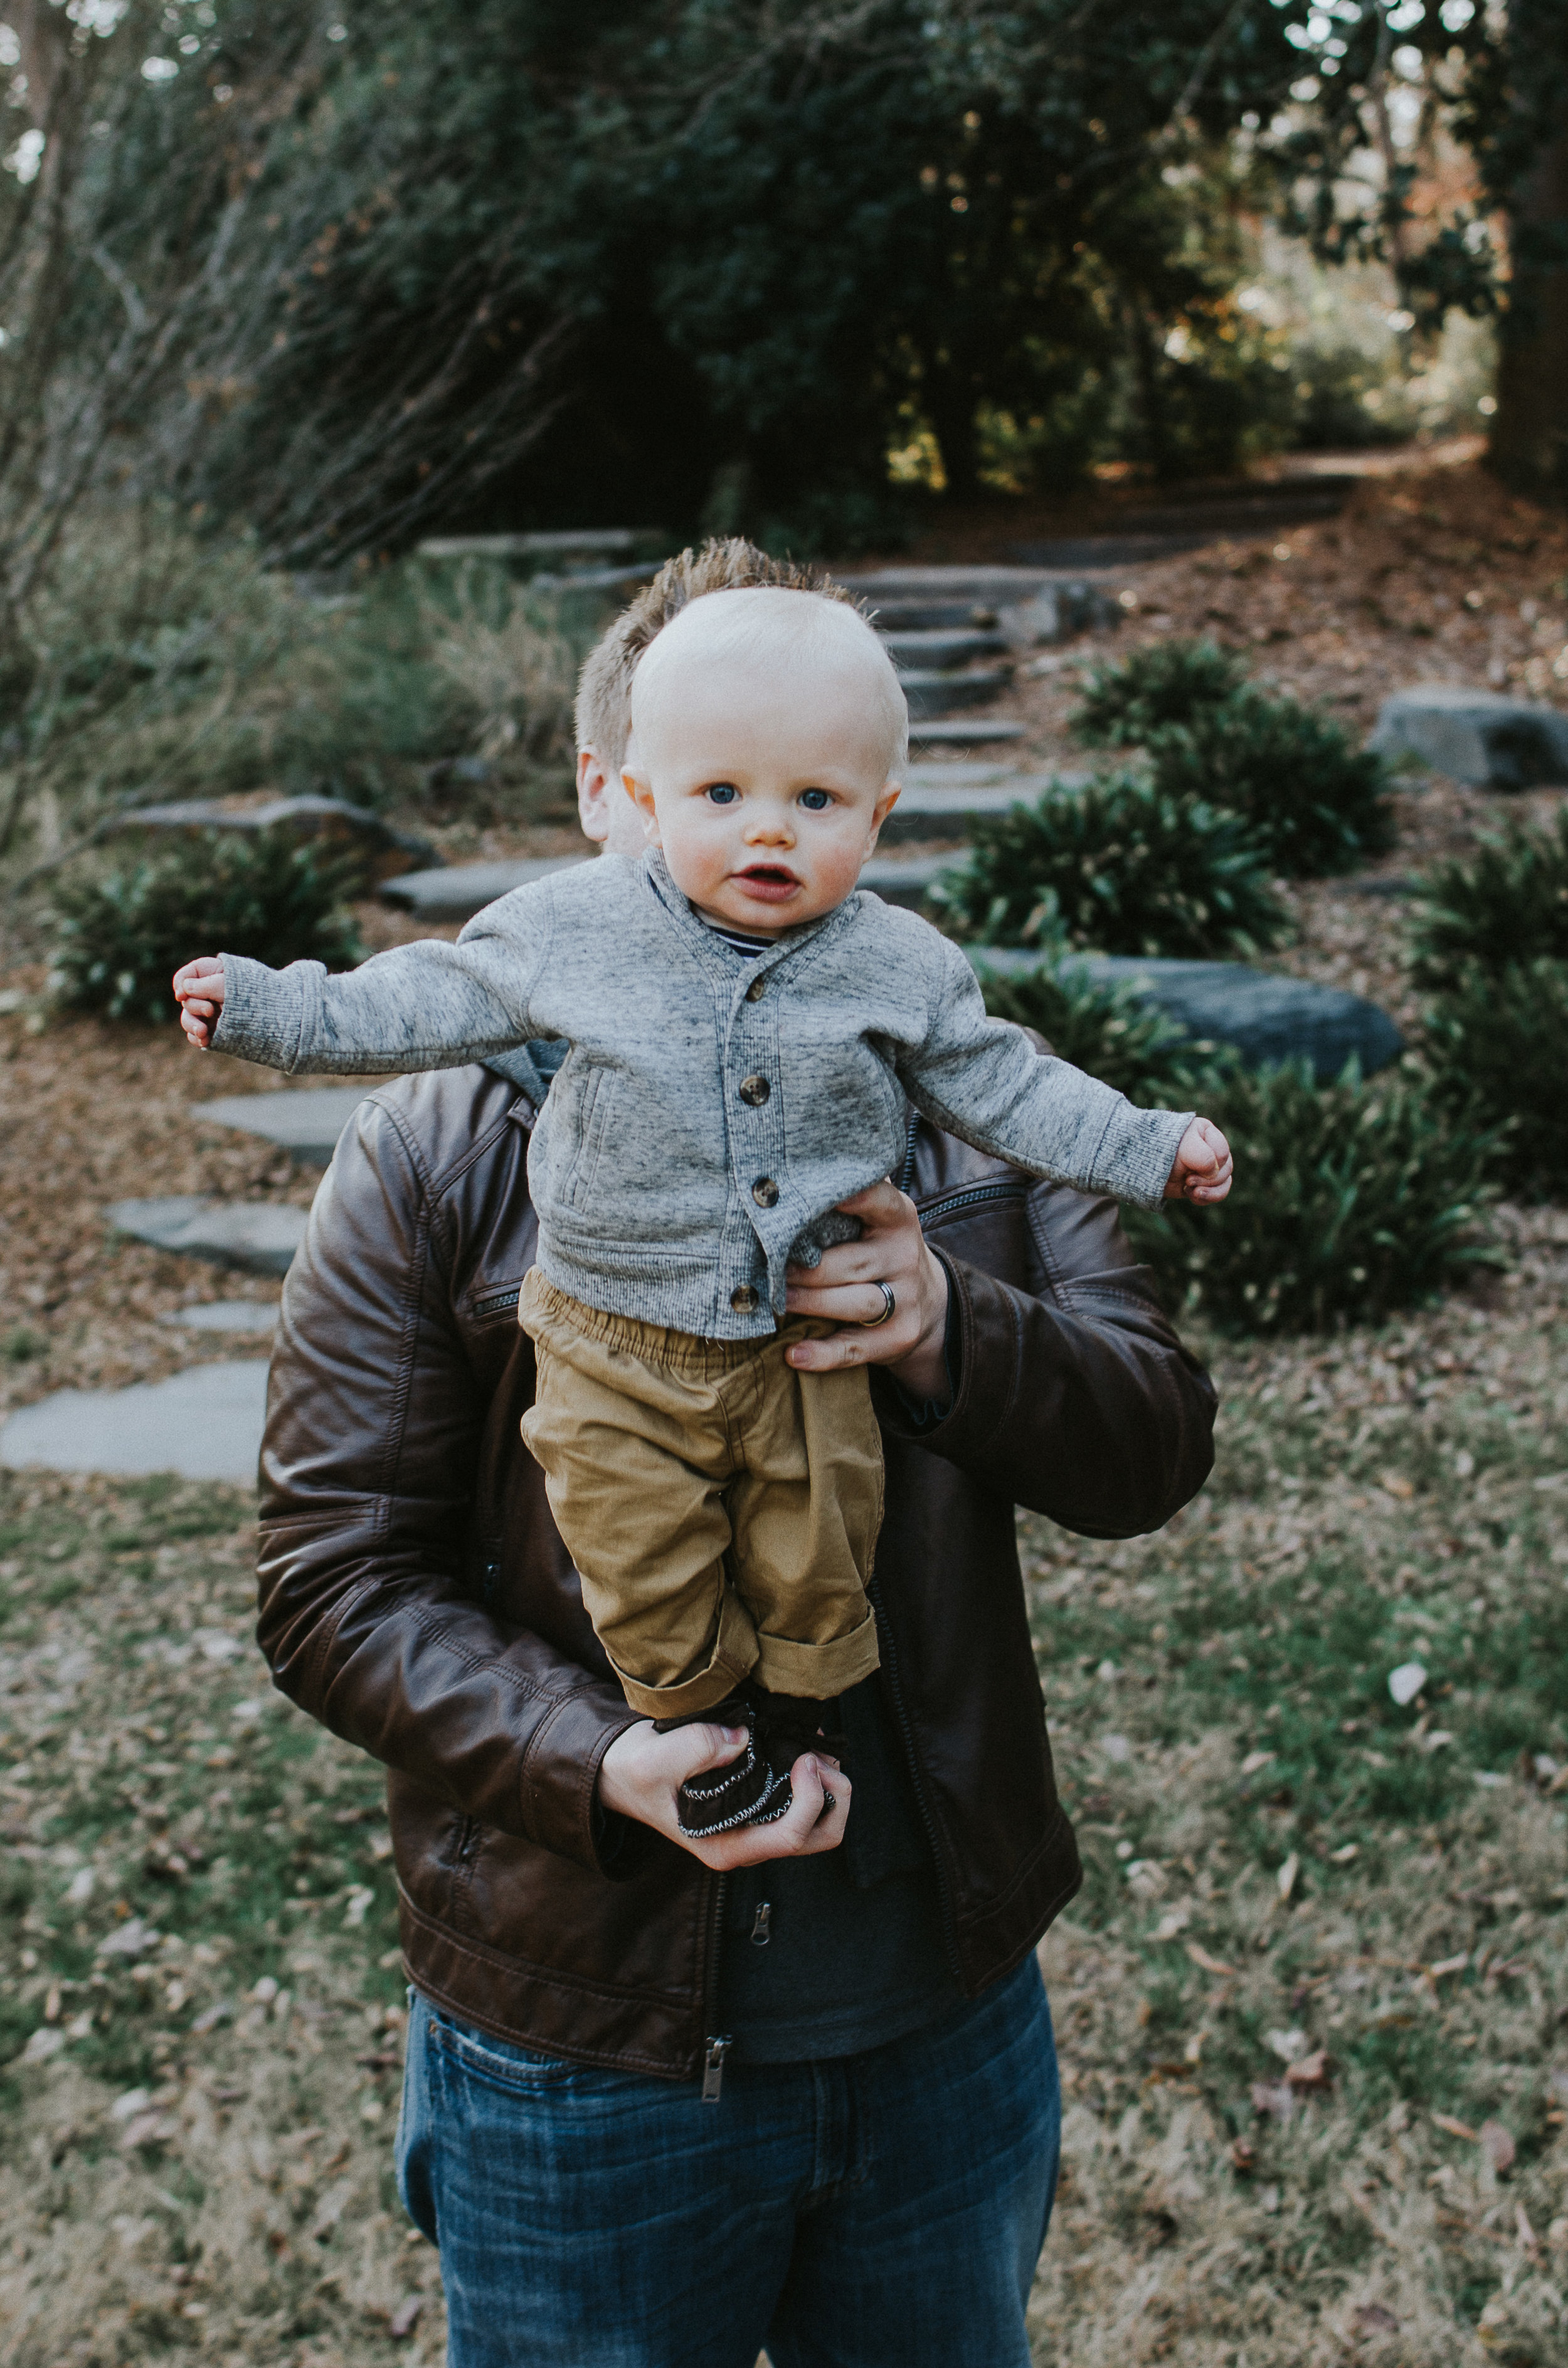 Duke Garden family portrait session.  Arianna Belle Photography is a North Carolina and Virginia based lifestyle photographer.  Affordable photographer in your area